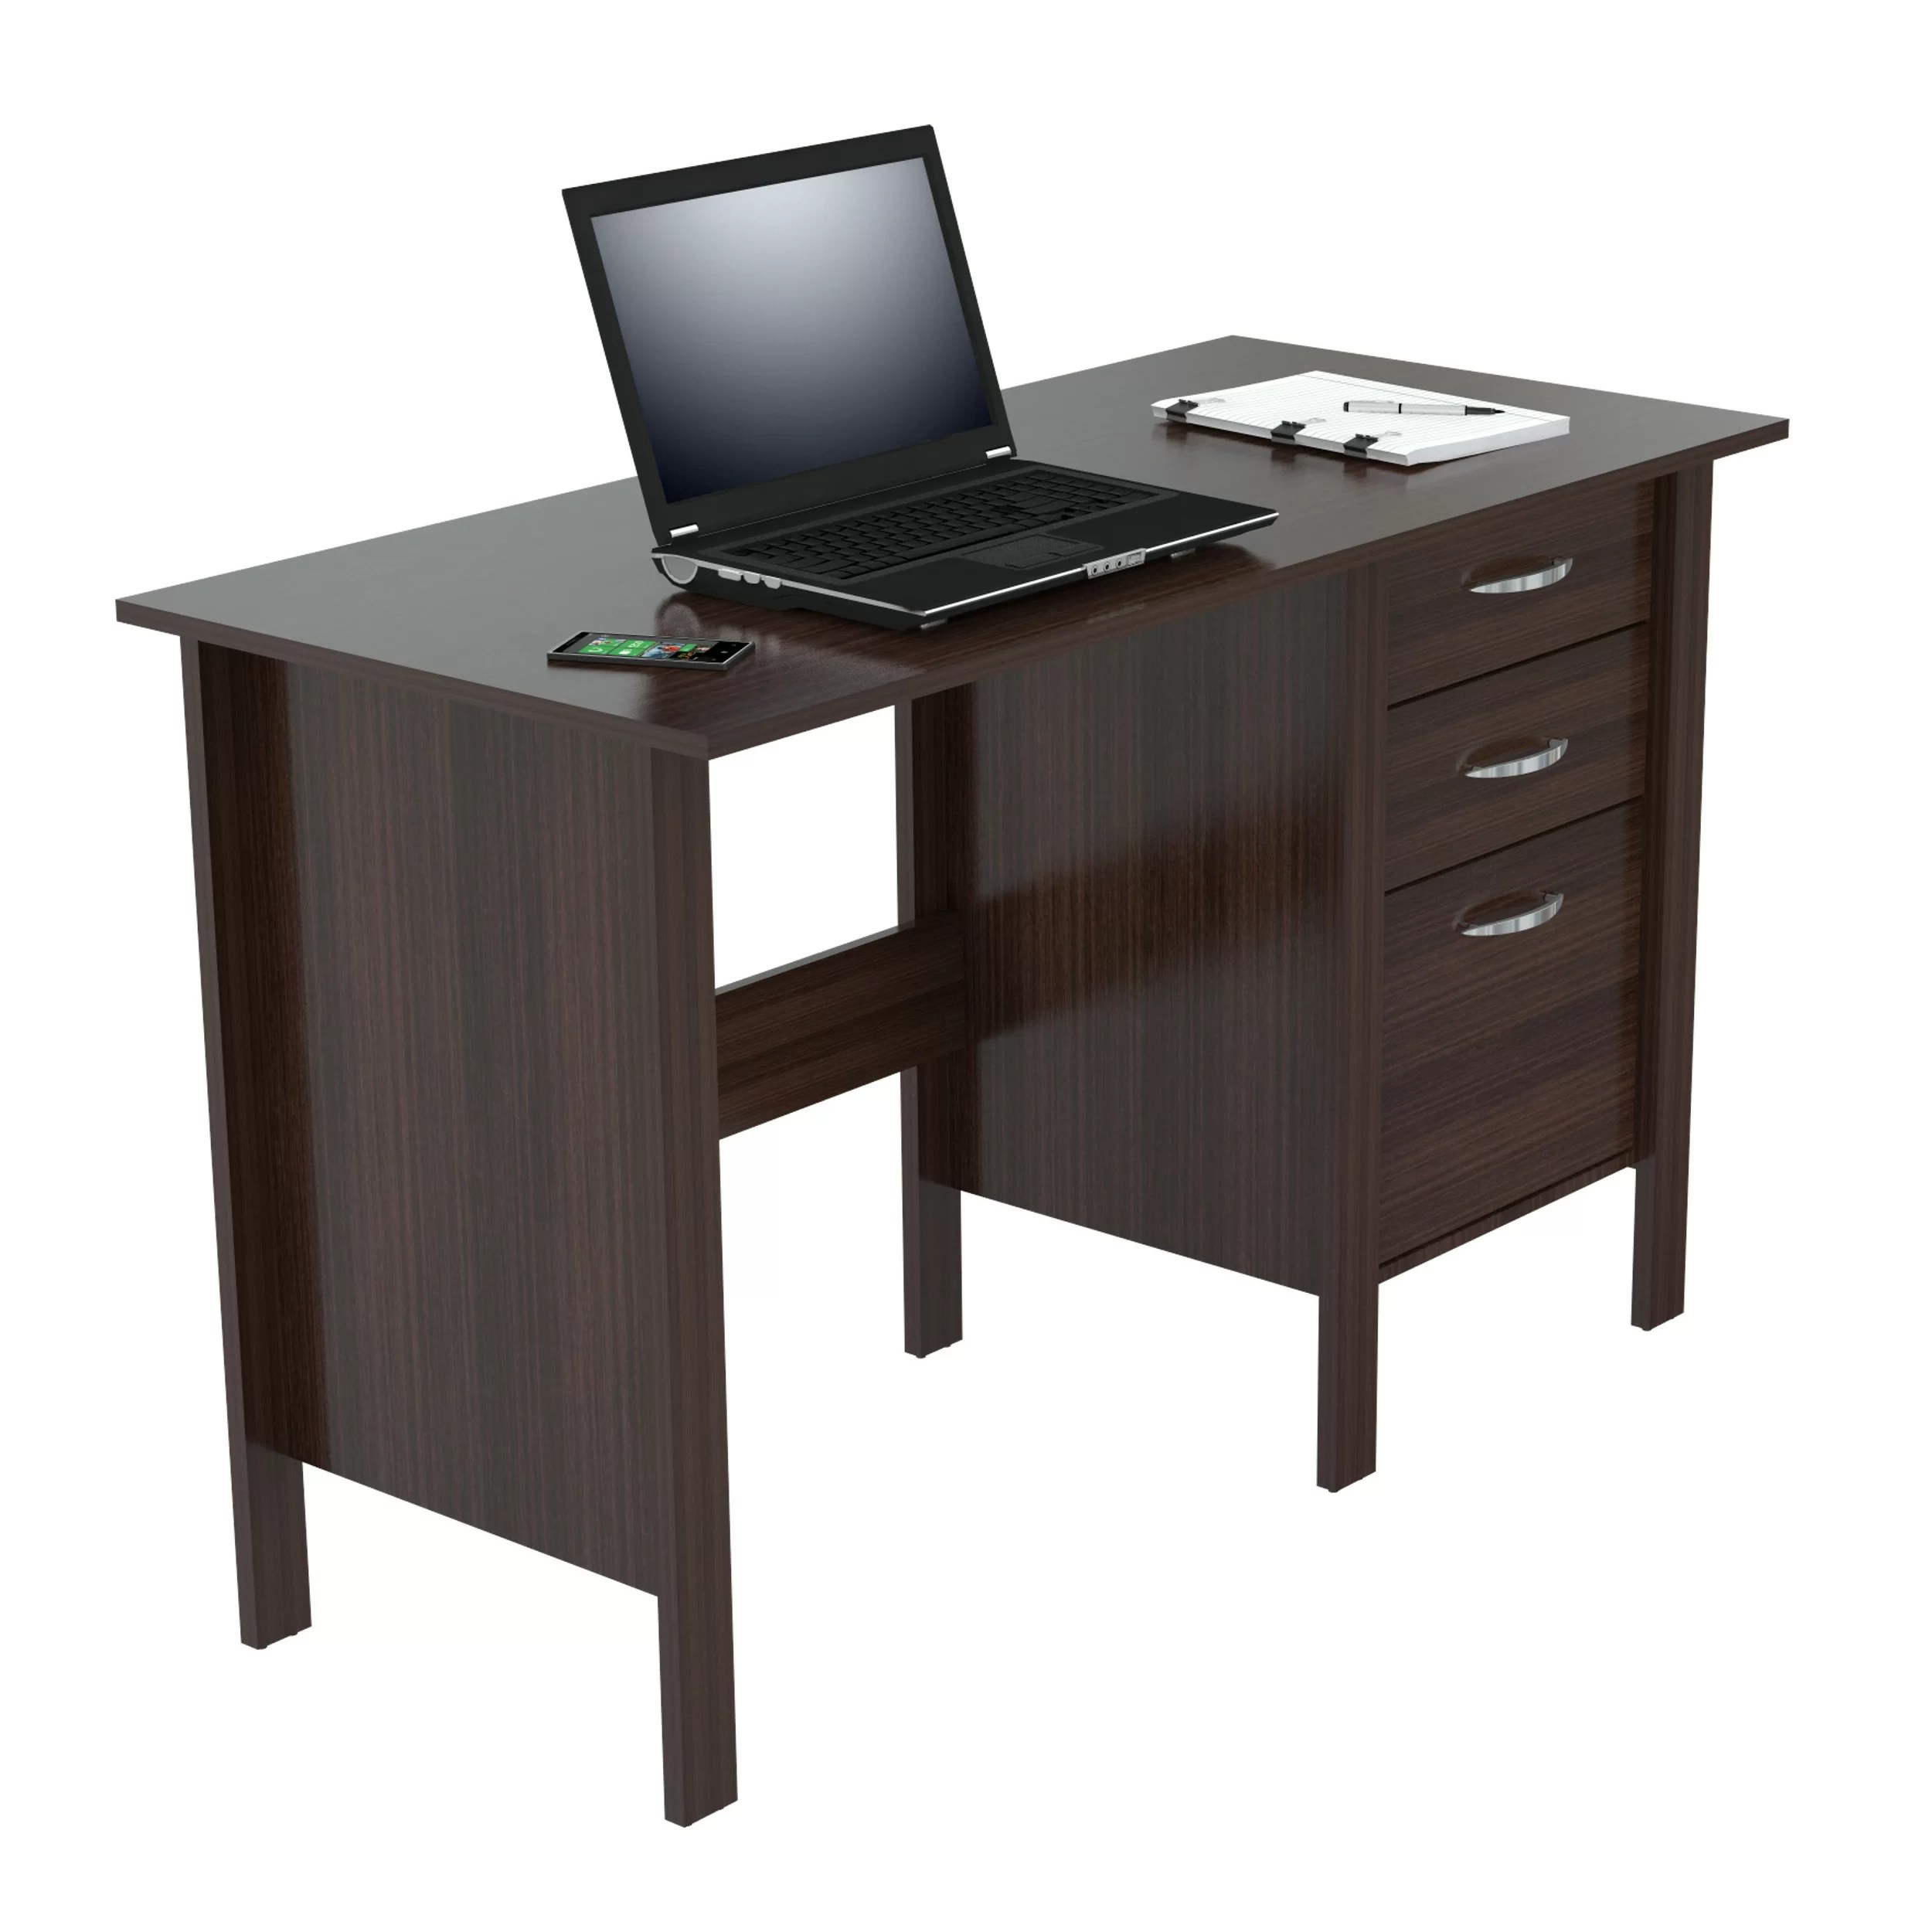 Computer Desk With Drawers Inval Computer Desk With 3 Drawers And Reviews Wayfair